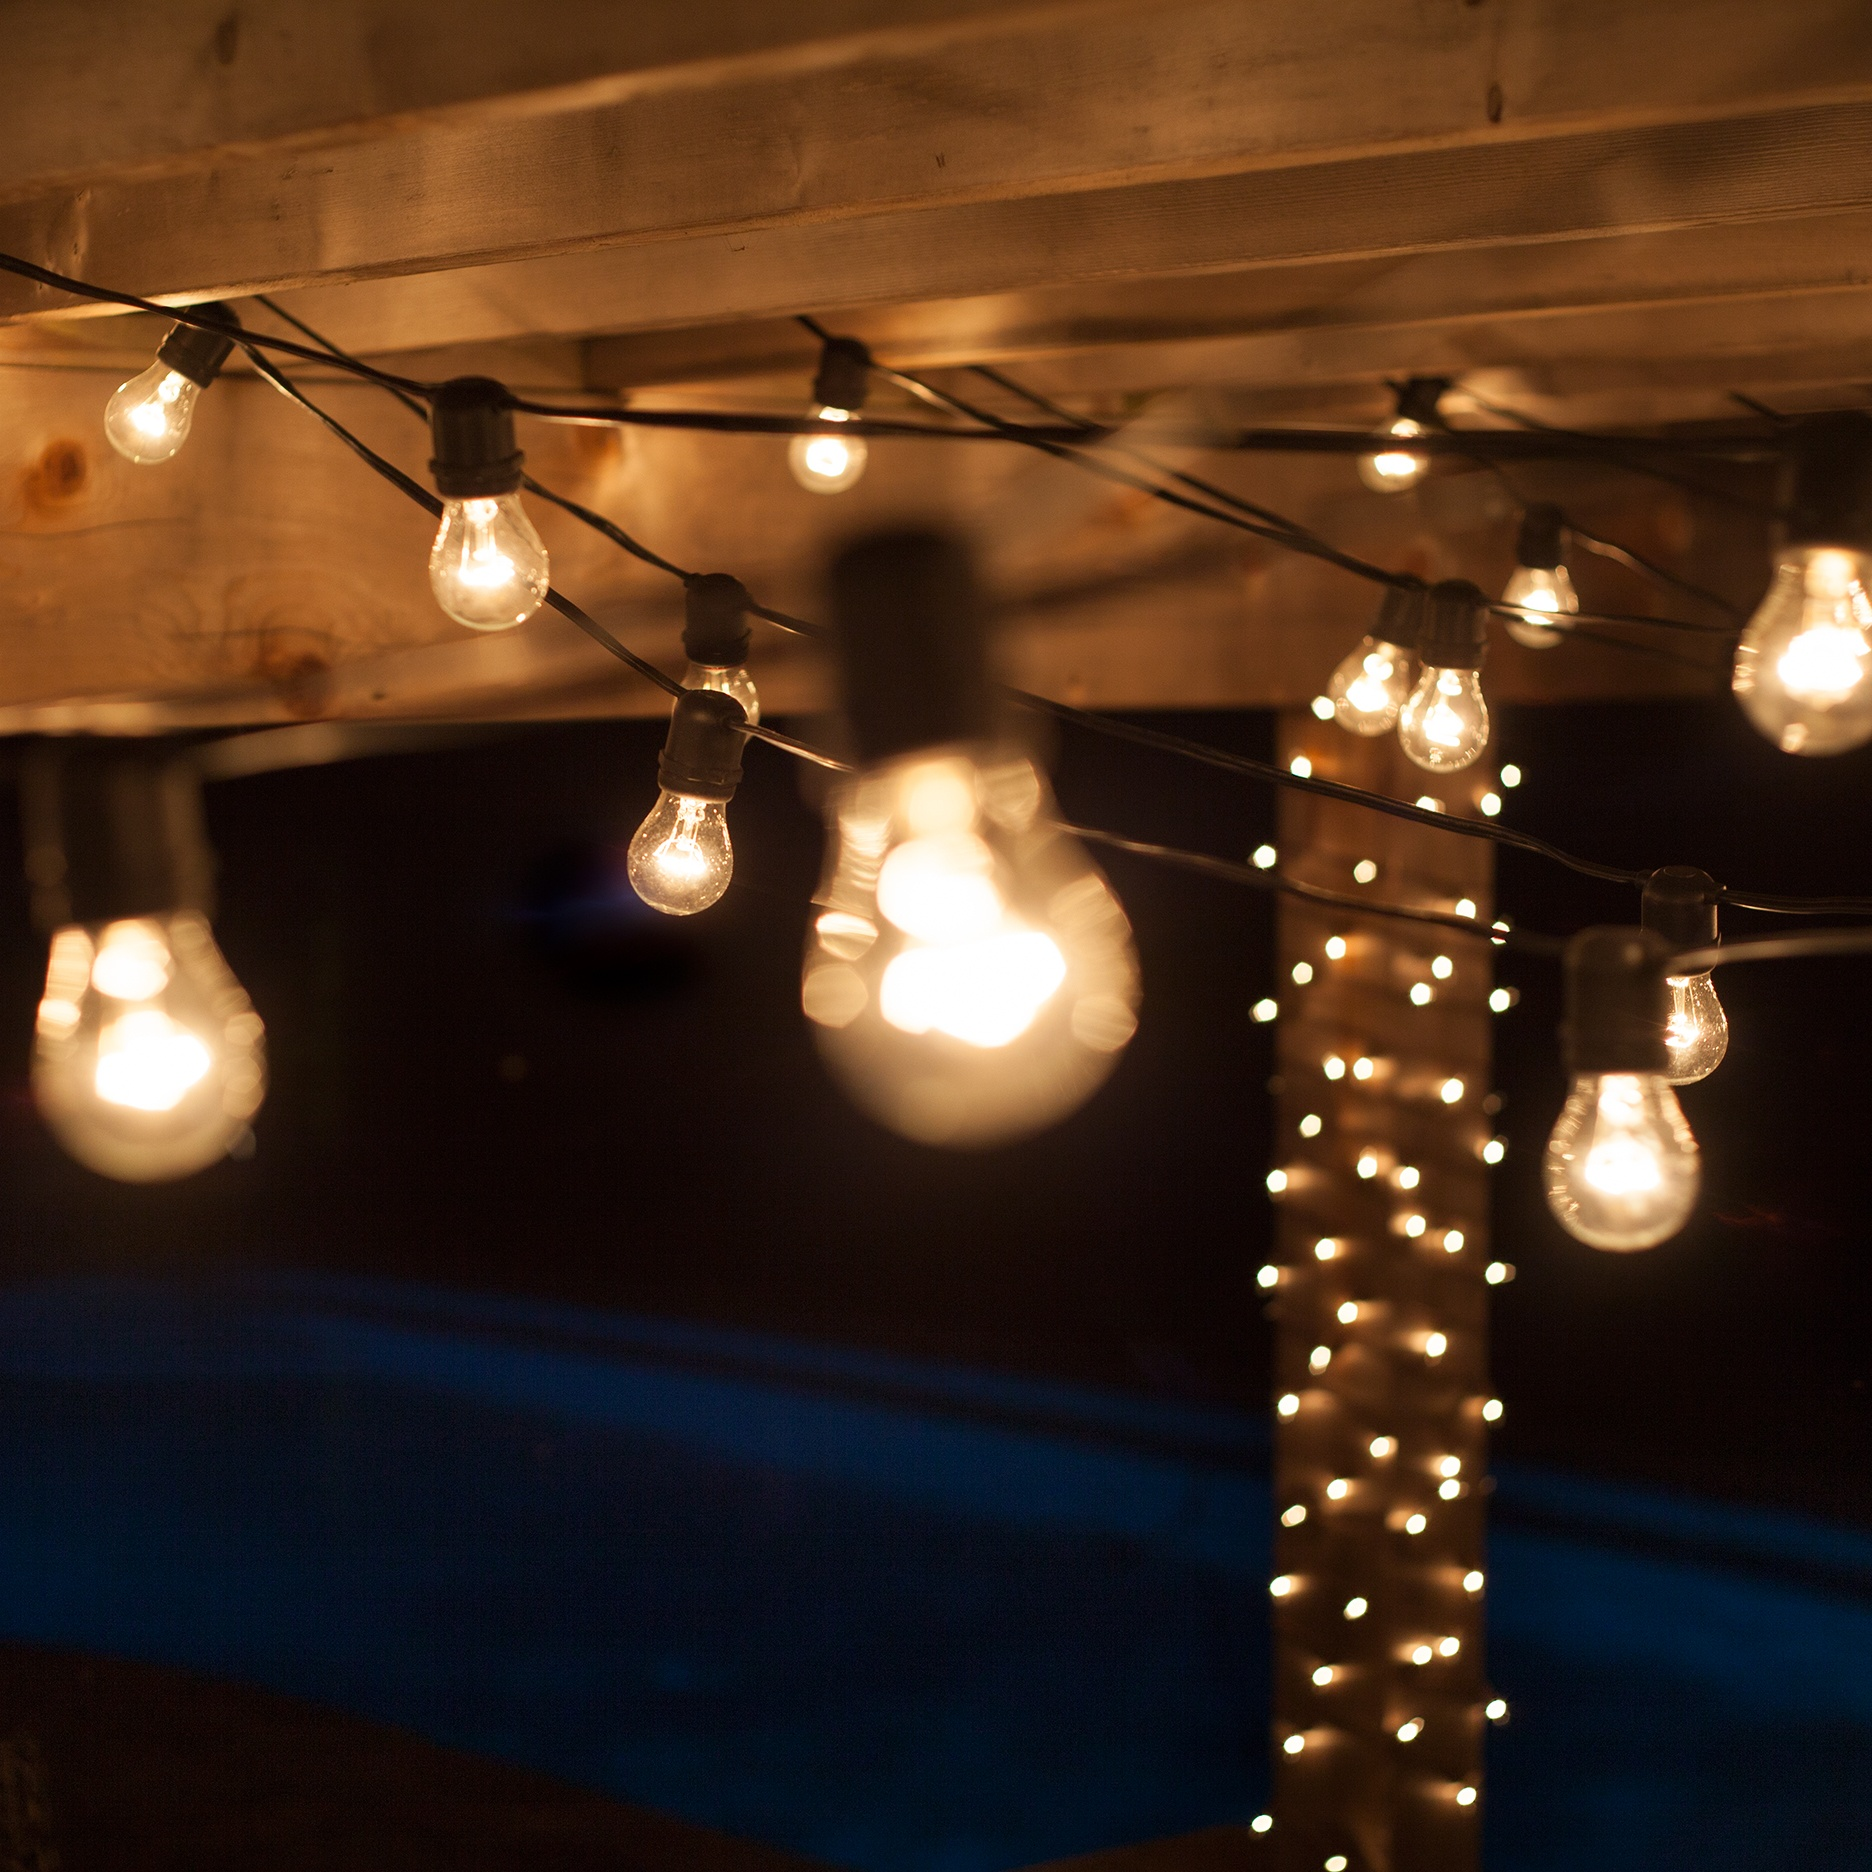 String Lights Green : Patio Lights - Commercial Clear Patio String Lights, 24 A15 E26 Bulbs Black Wire